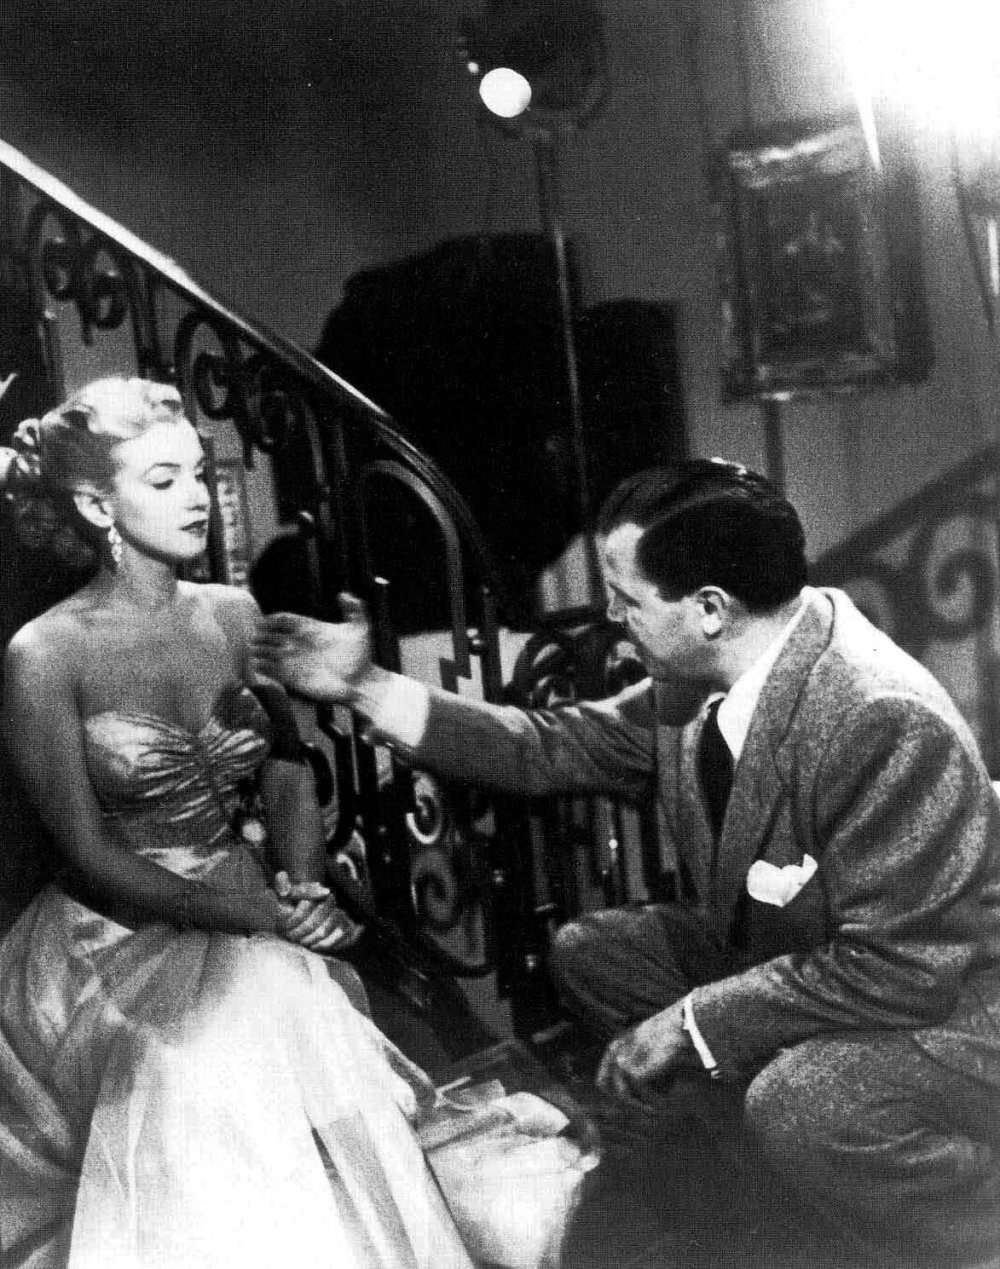 Monroe with Joseph L. Mankiewicz filming All about Eve (1950)